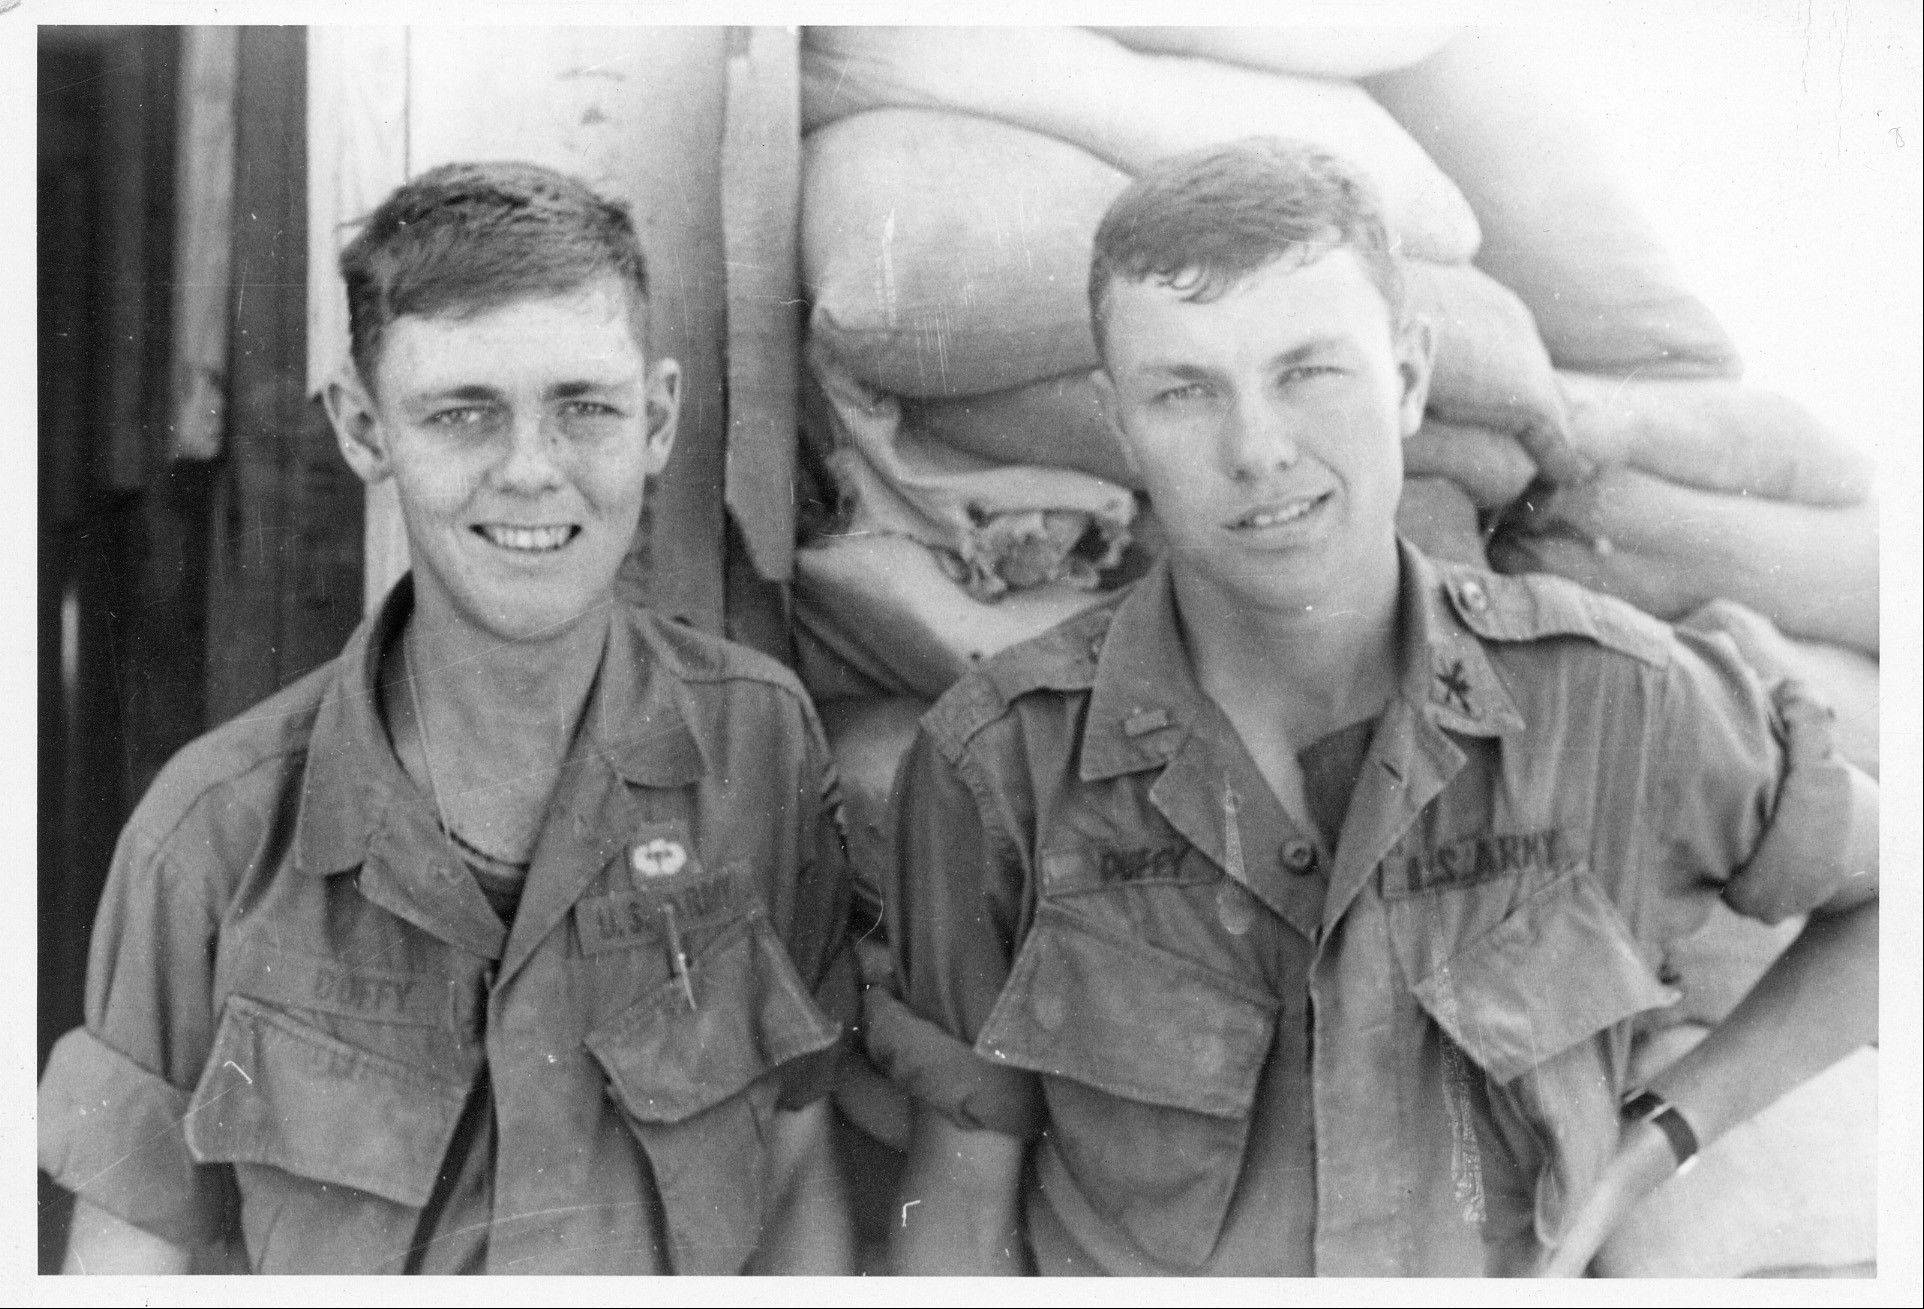 Brothers Dan, left, and Michael Duffy met up for this photograph as their tours of duty in Vietnam overlapped in 1968.